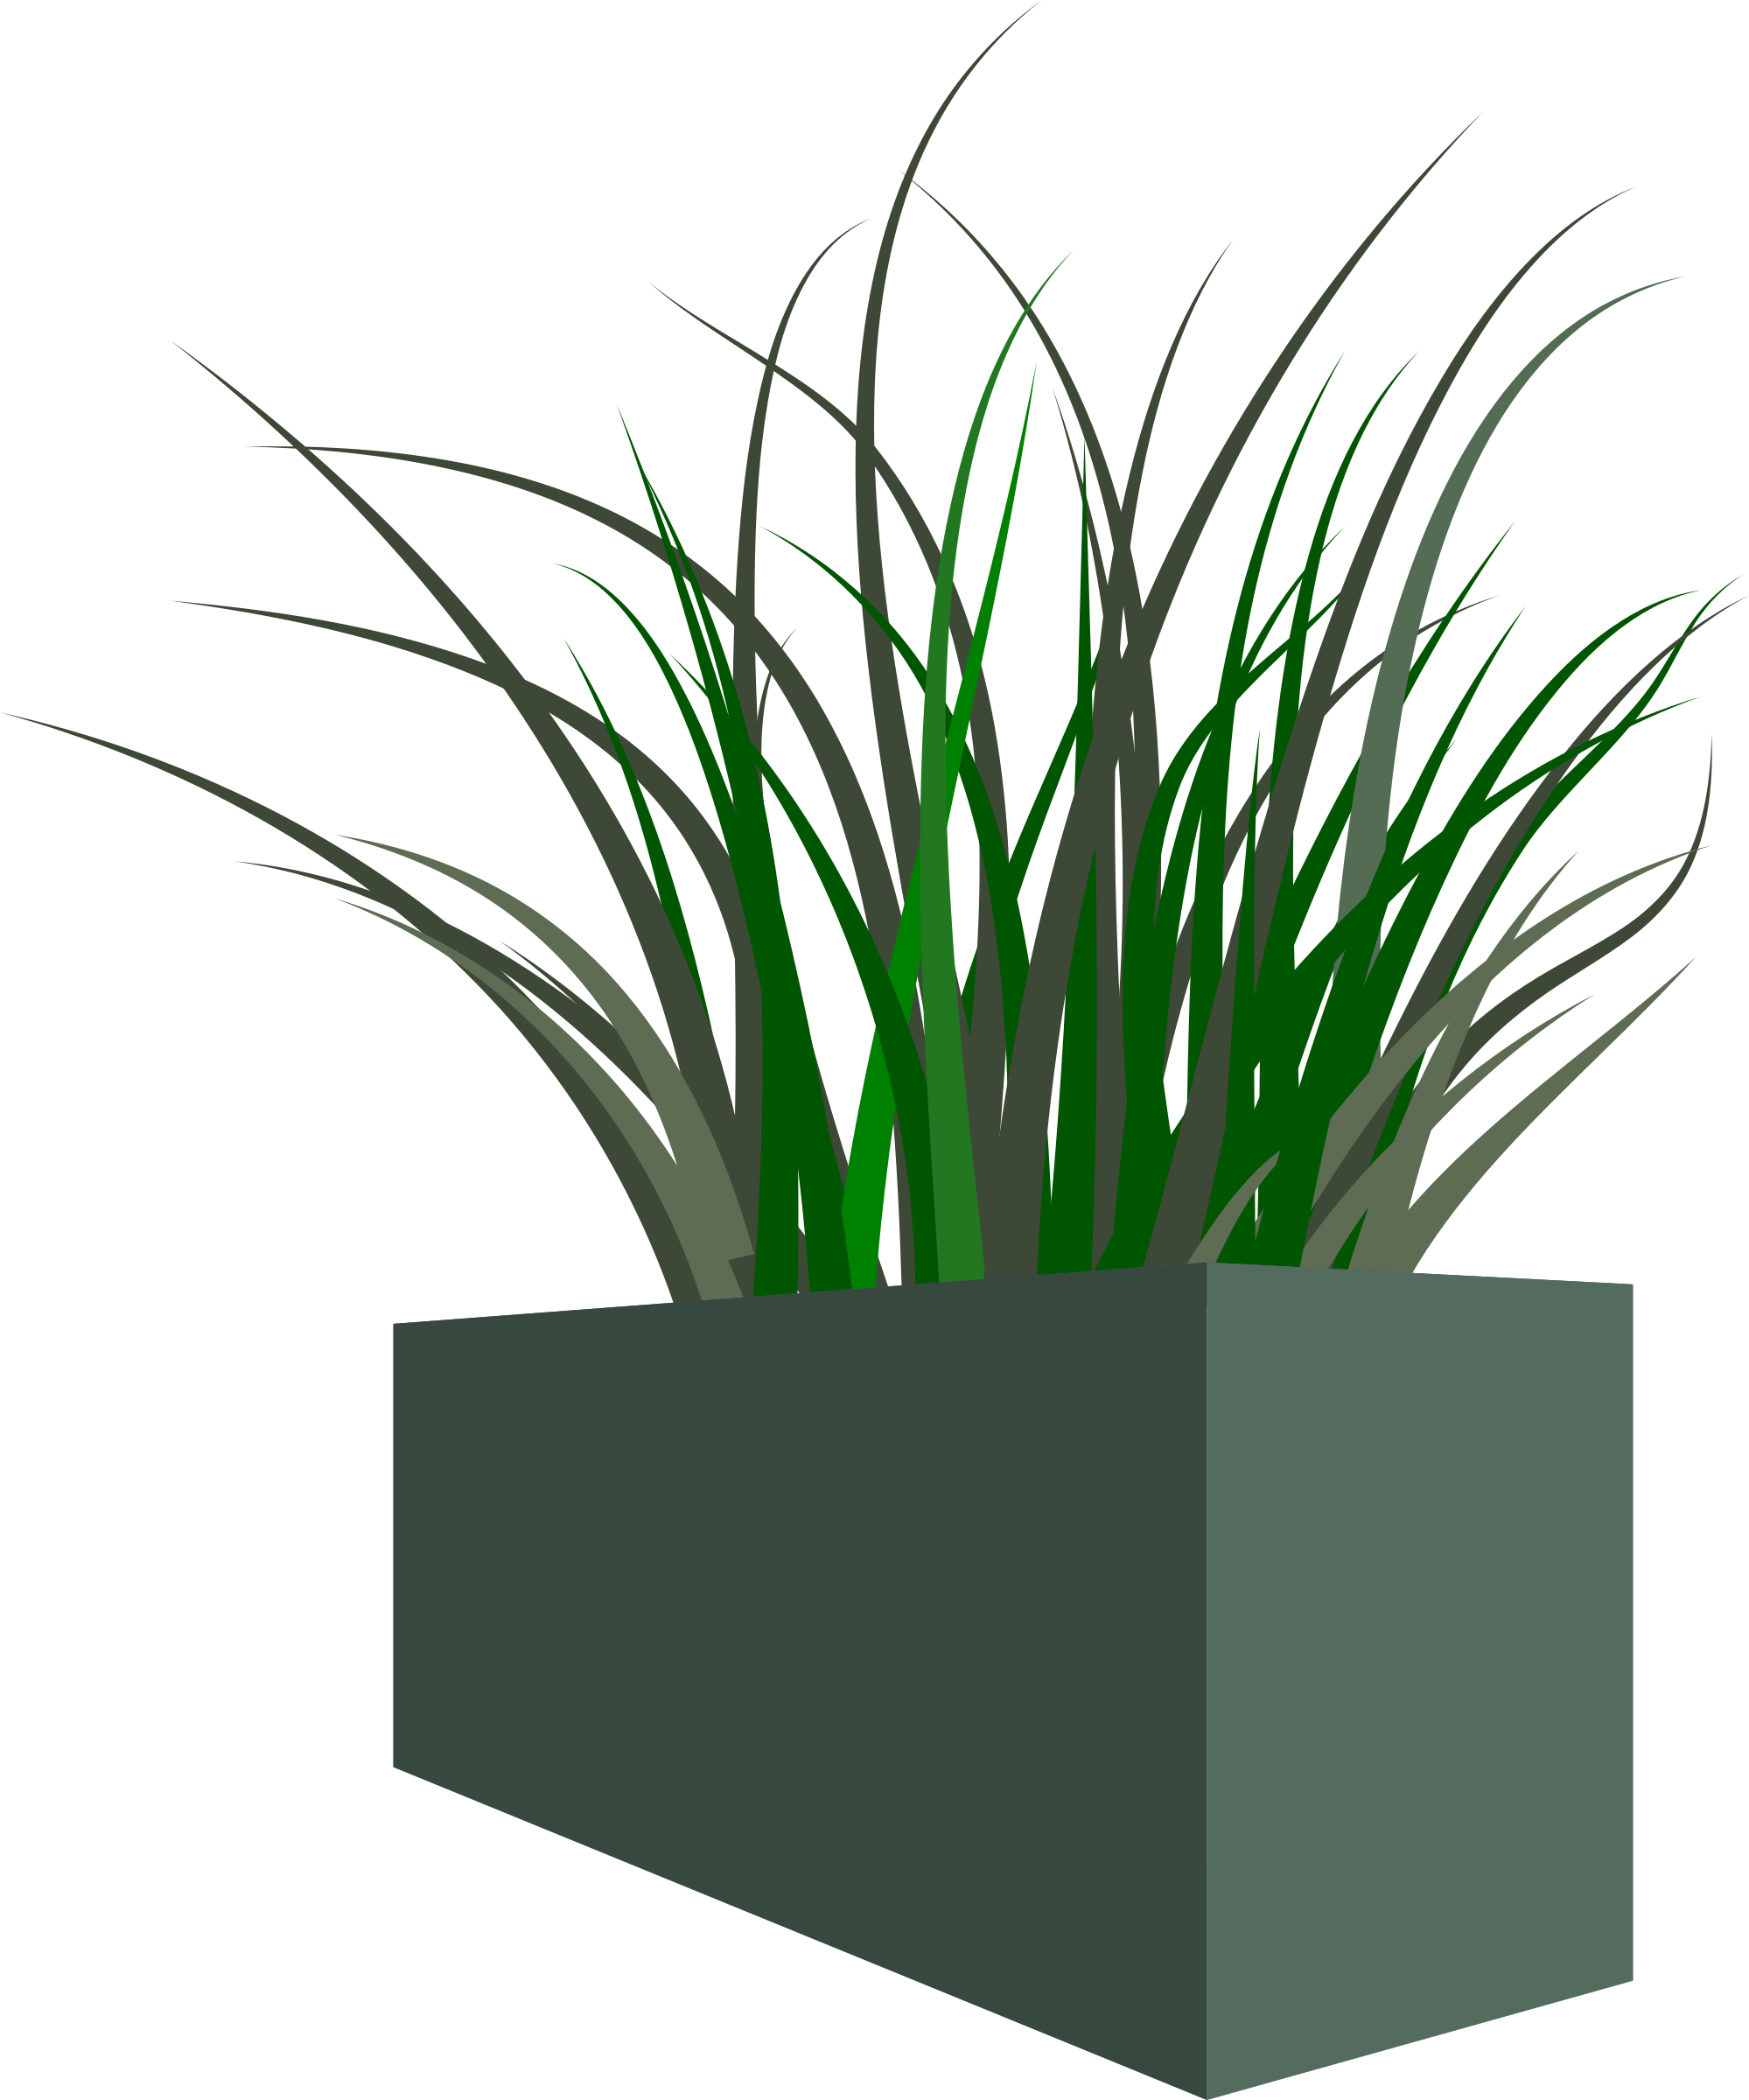 Grass in square planter by stevepetmonkey